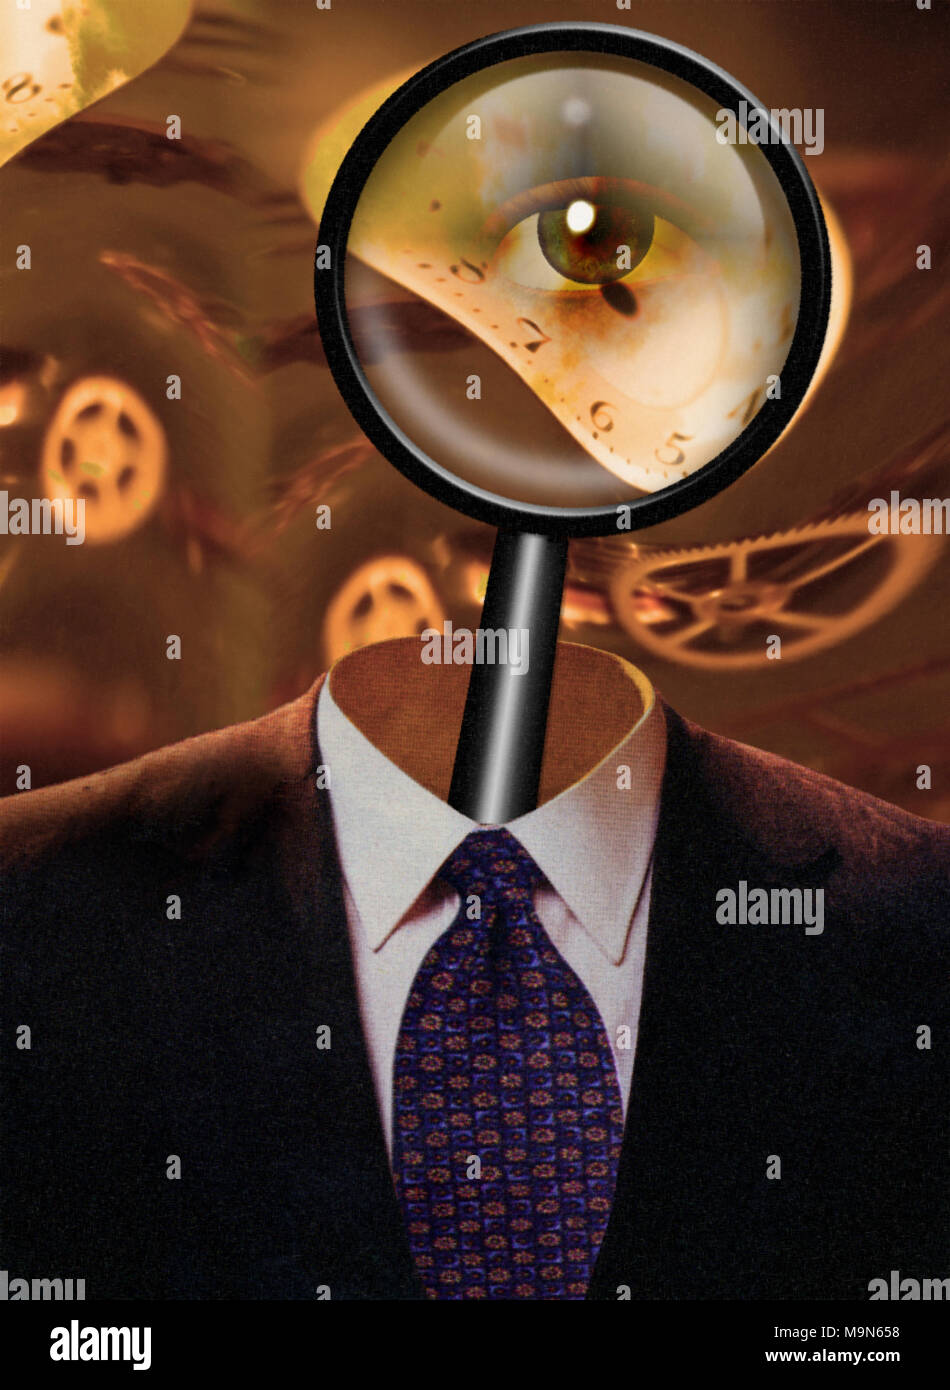 Magnify glass in man's suit - Stock Image